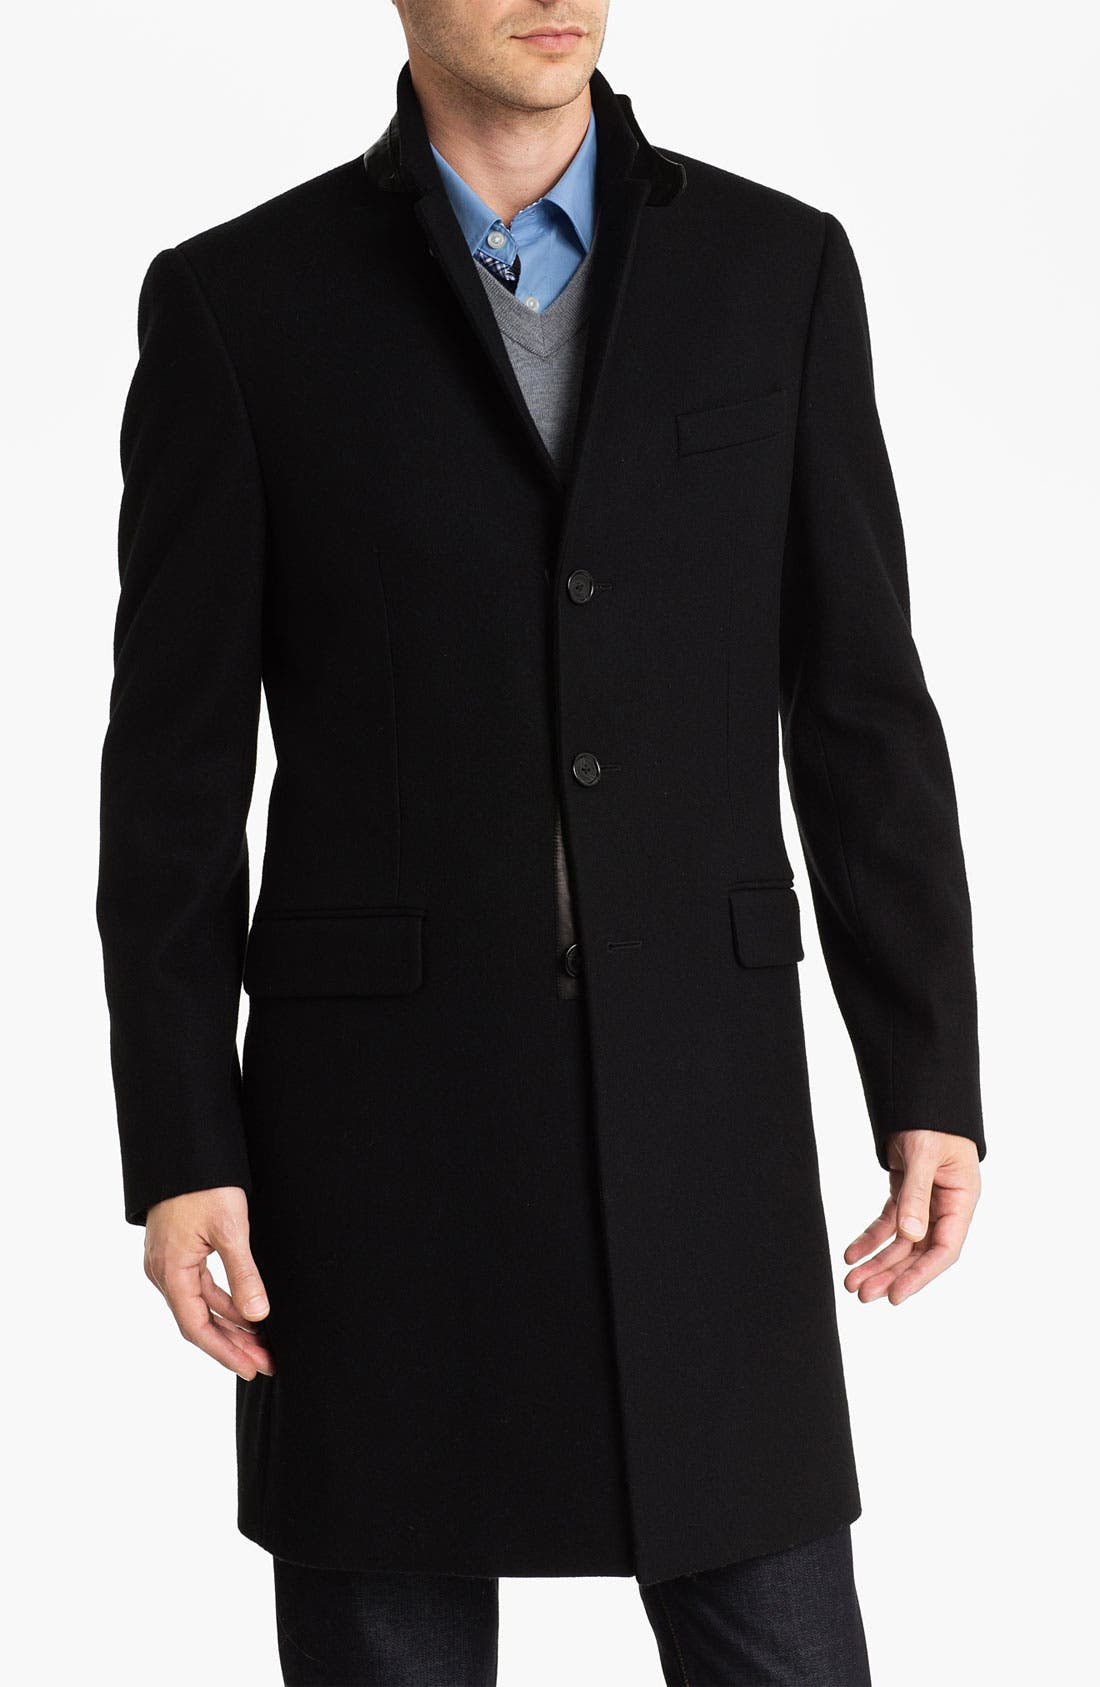 Alternate Image 1 Selected - Michael Kors Melton Topcoat with Leather Trim